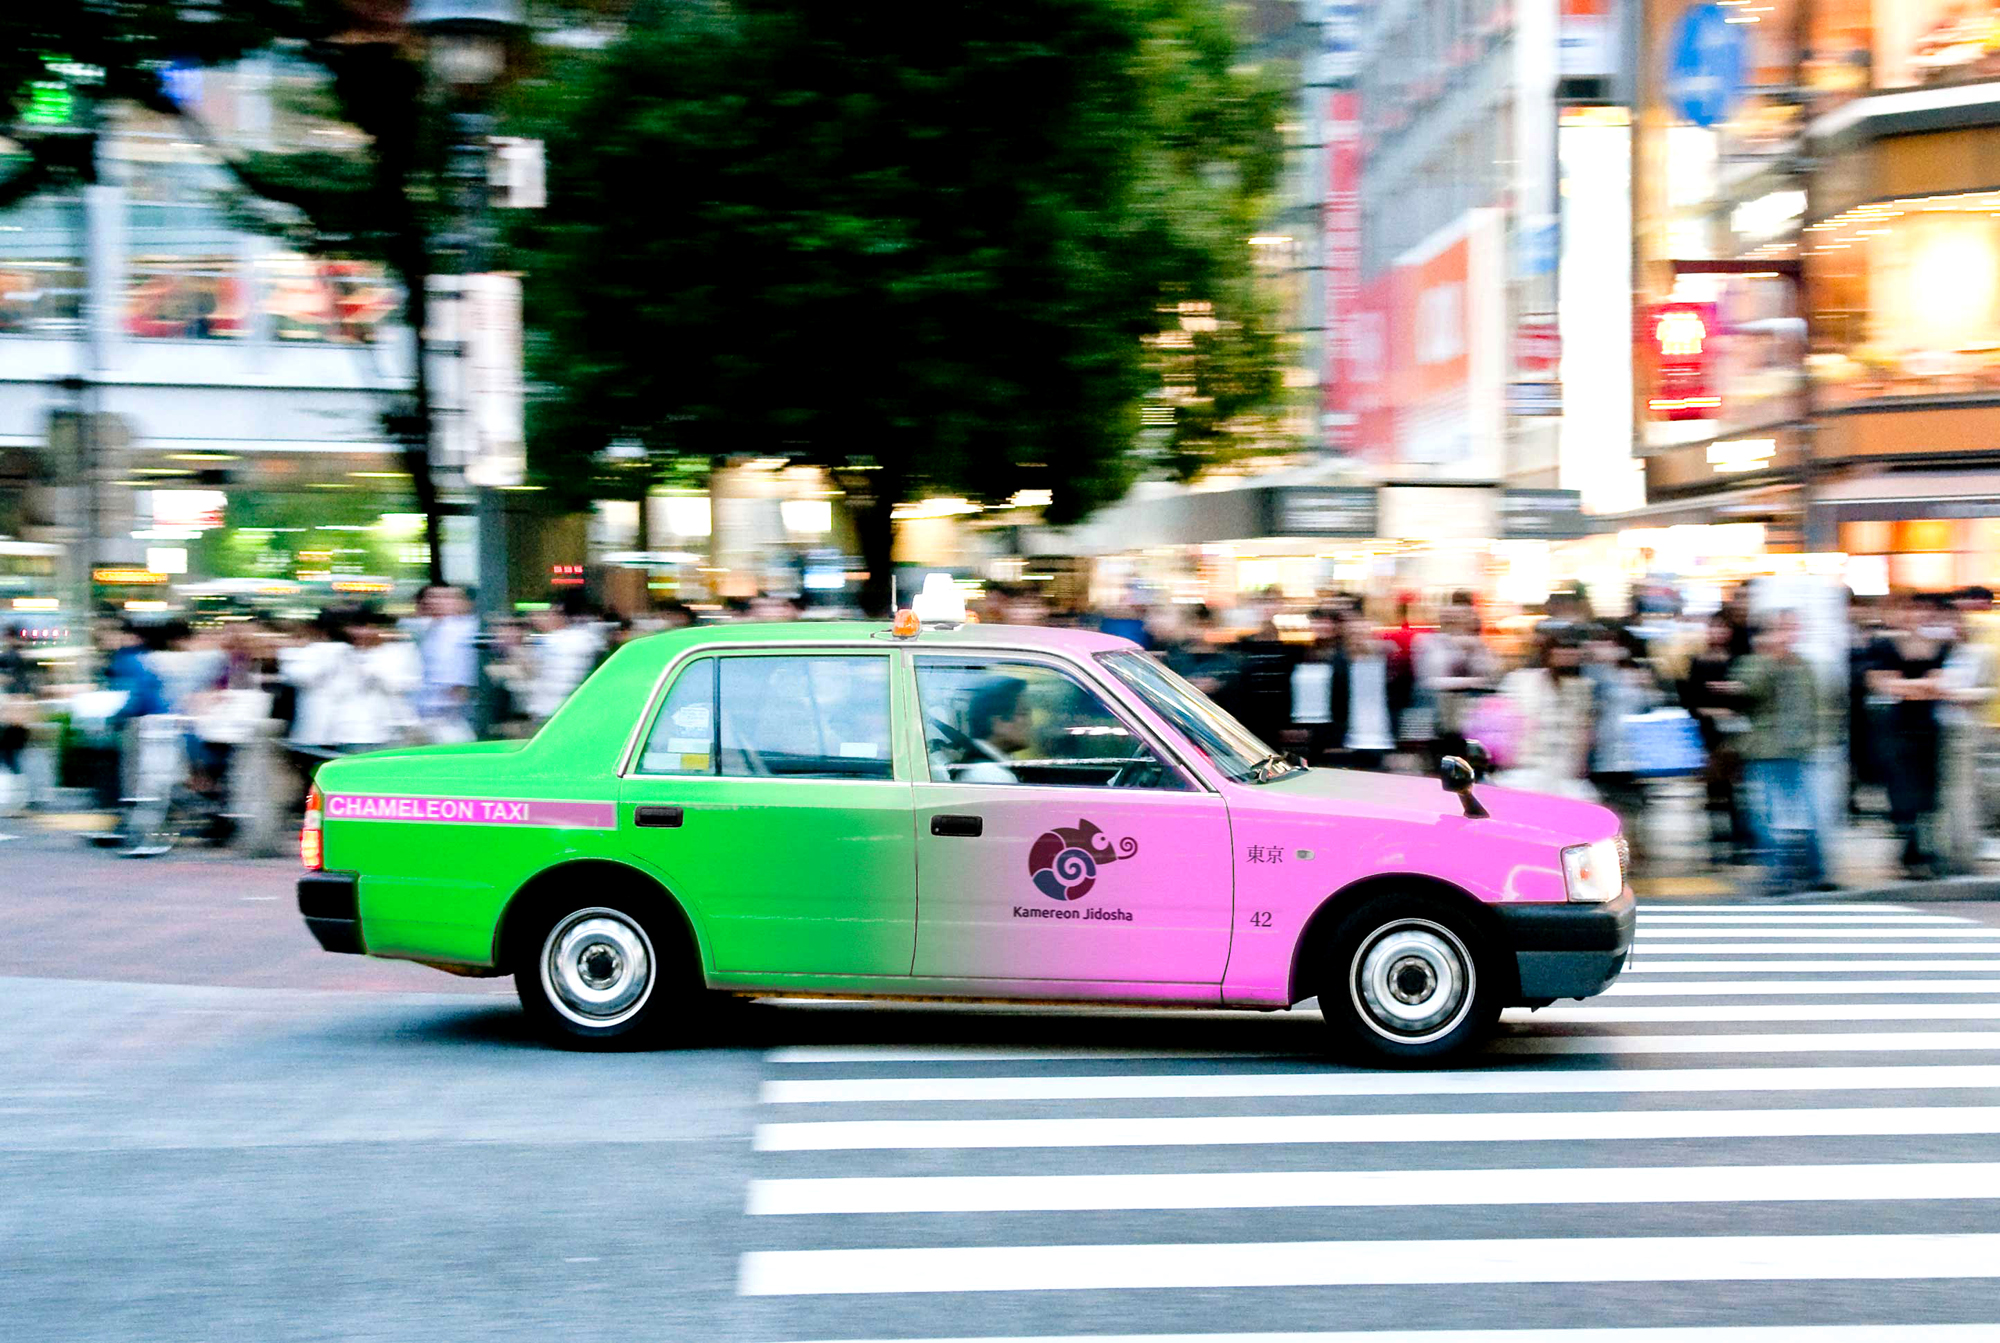 With taxis that change color to indicate their status, Kamereon Jidosha K.K. is hoping to stand out among the competition in Tokyo. | GETTY IMAGES / THE JAPAN TIMES